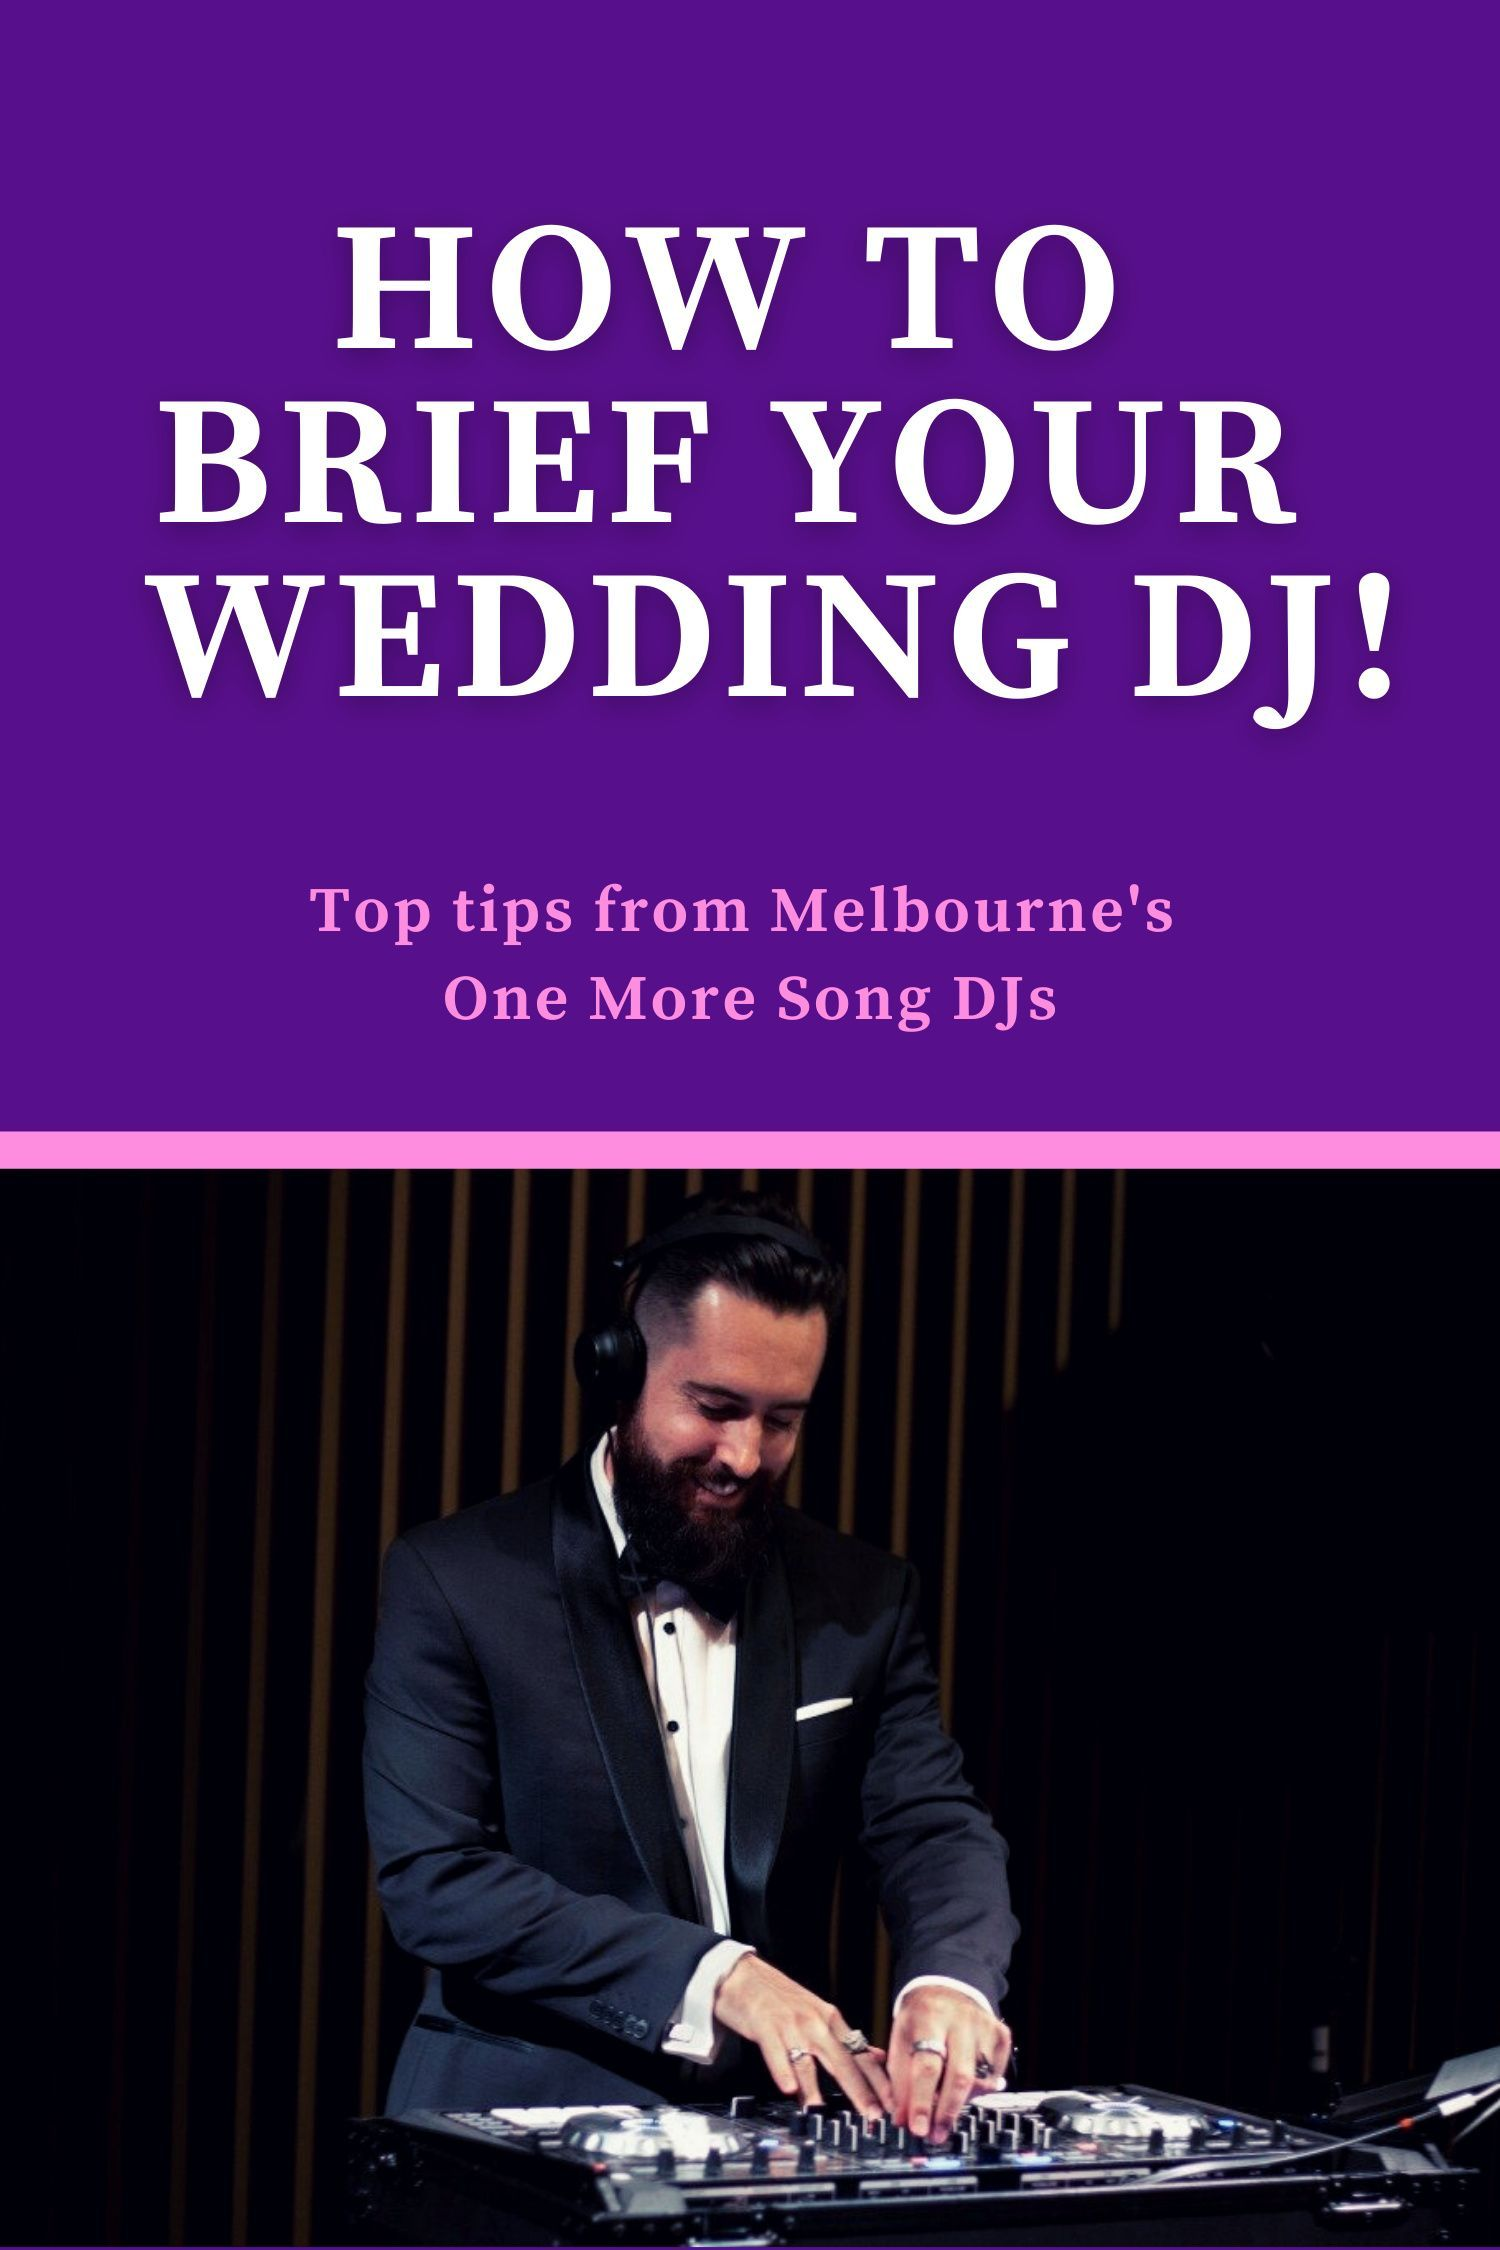 Trying to plan your the music for your wedding reception? Melbourne DJs One More Song discuss the best way to choose your music and work with your DJ to create the perfect vibe for your big day! #weddingsongs #weddingmusic #weddingtips #weddingplaylist #weddingdj Photo credit: Gold Flamingo Photography.